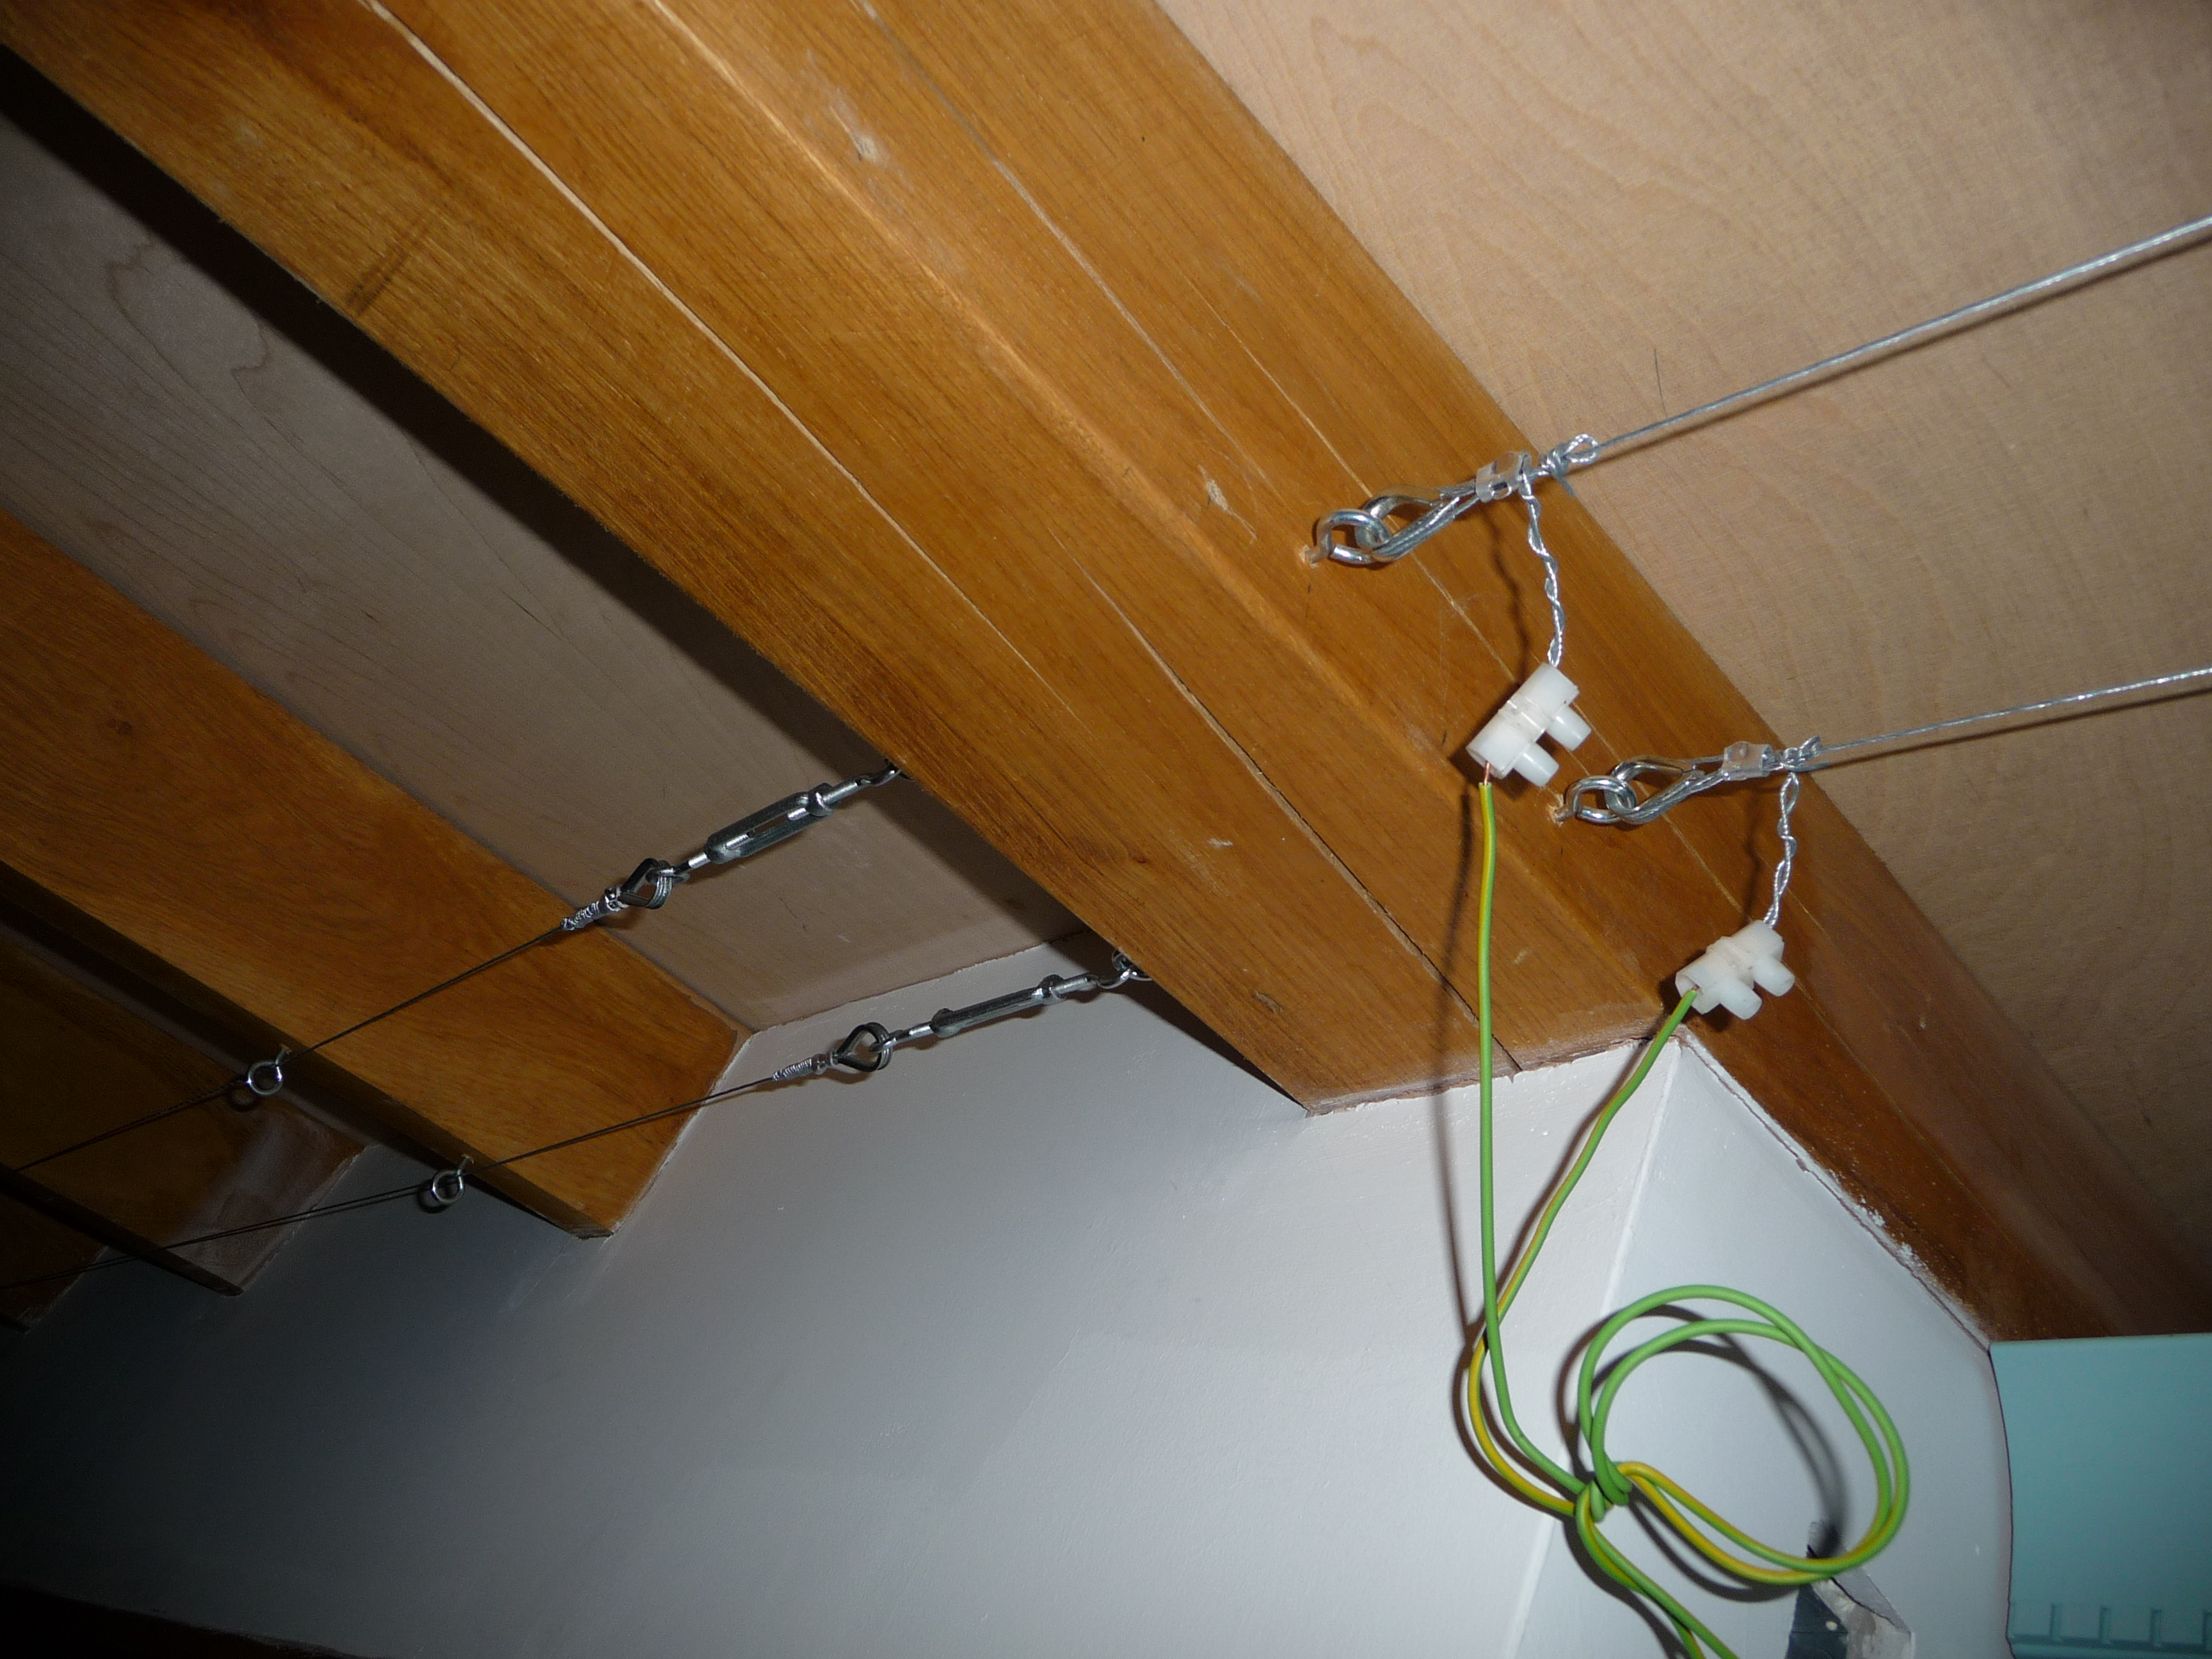 Picture of 12v DC Trapeze Lighting for Not Much Cash